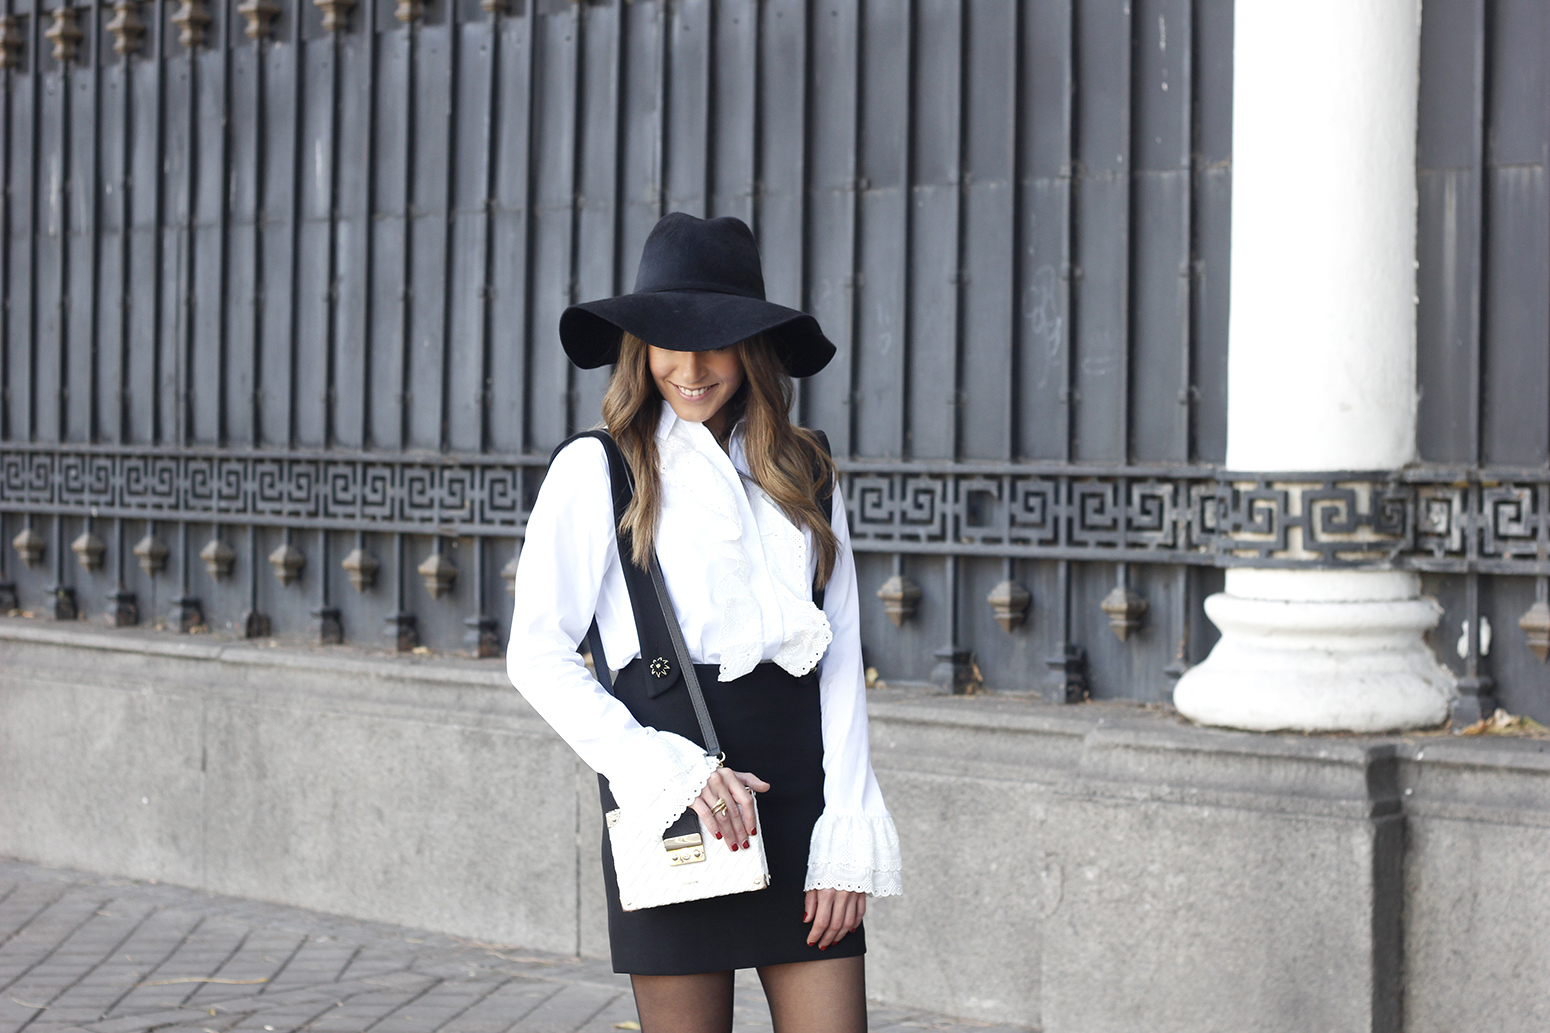 black skirt white shirt black and white outfit trend inspiration hat style fall look blanco y negro09